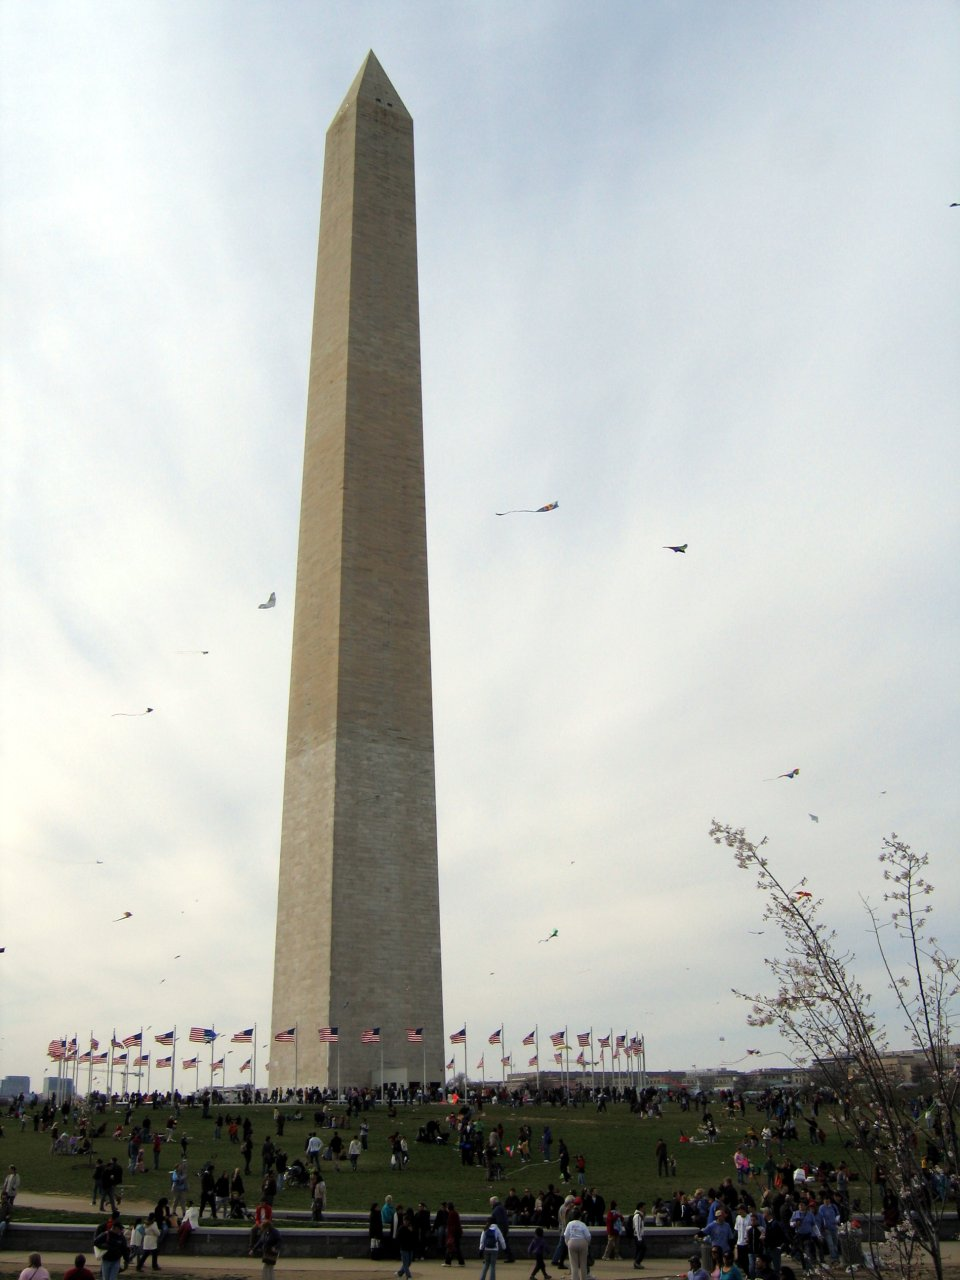 Kite Festival Surrounds the Washington Memorial